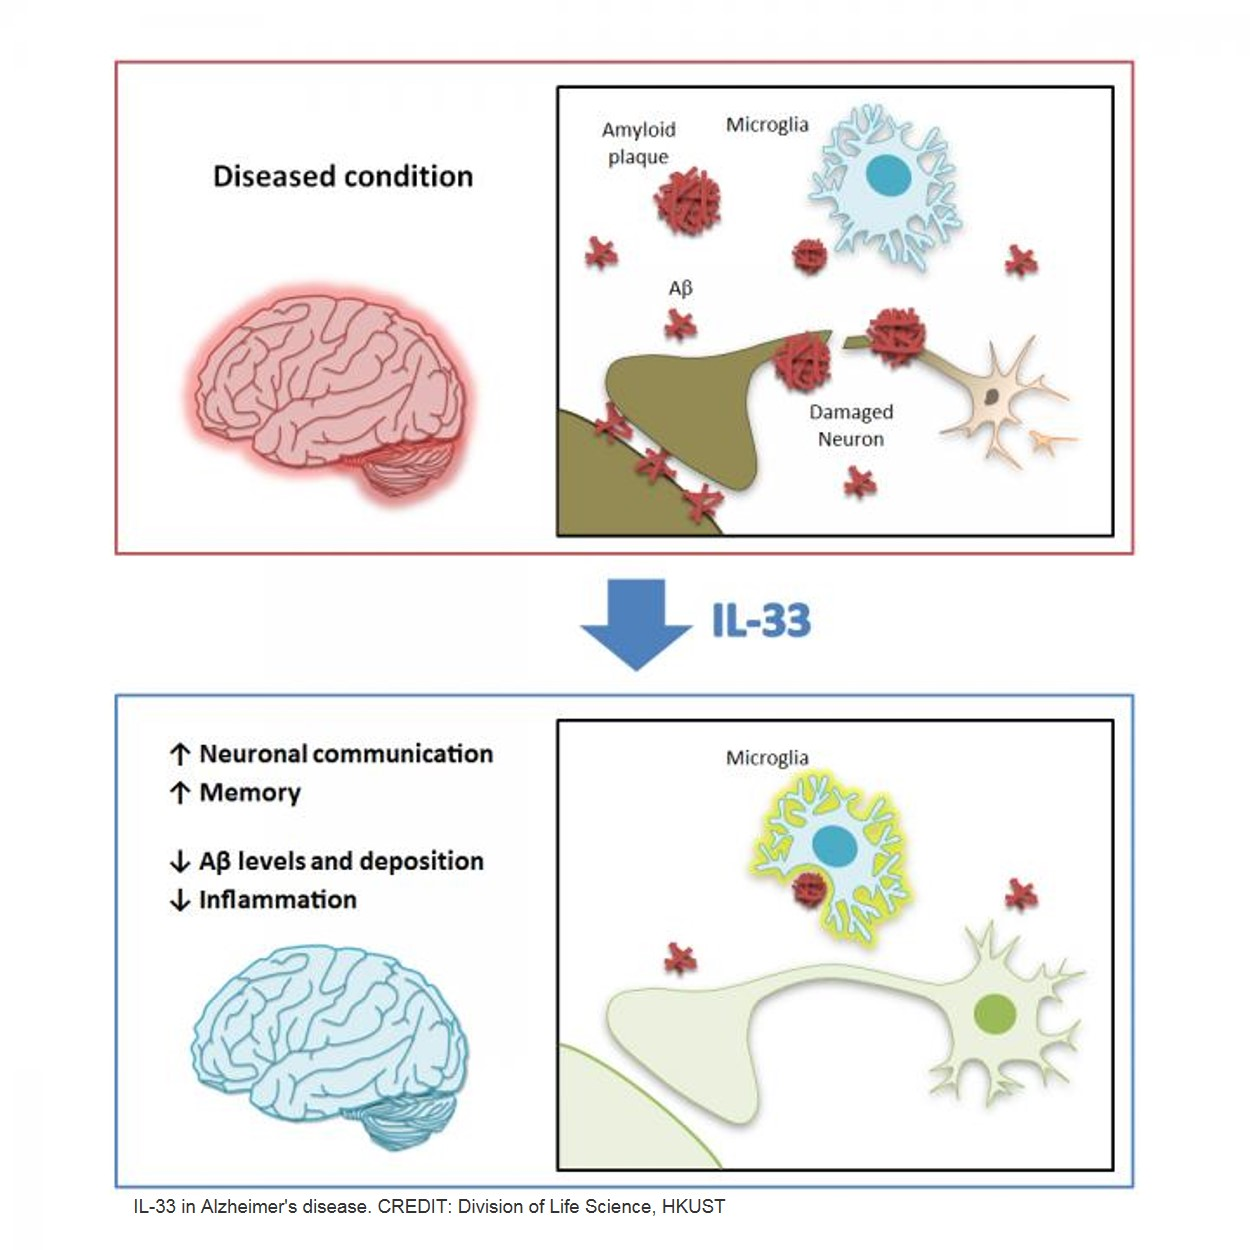 IL-33 ameliorates Alzheimer's-like pathology and cognitive decline